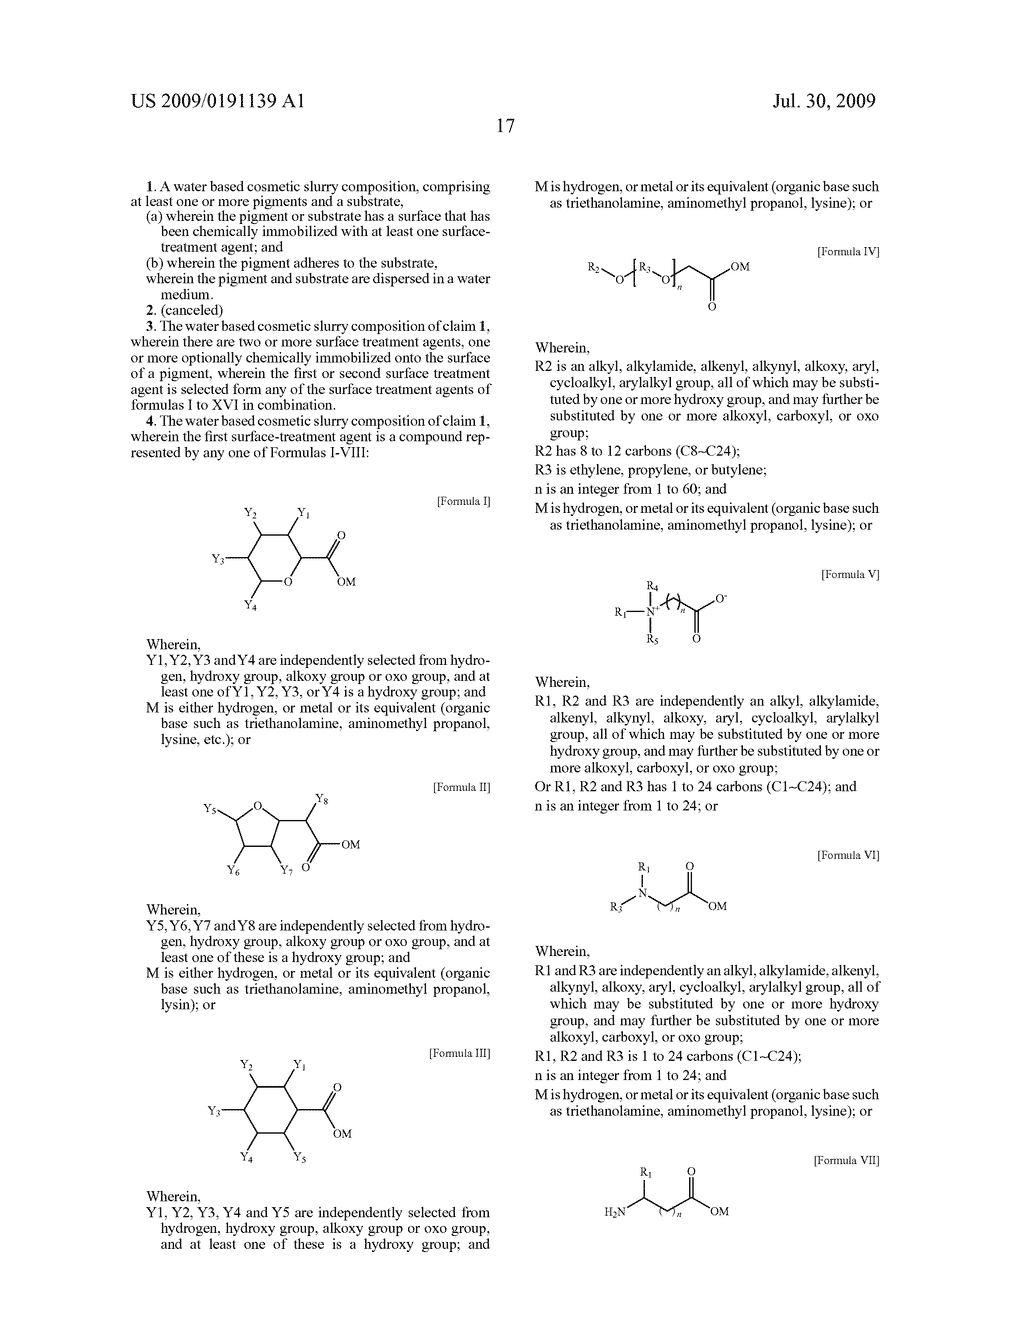 WATER BASE SLURRY COMPOSITION FOR COSMETIC PRODUCTS AND METHODS OF USE - diagram, schematic, and image 20